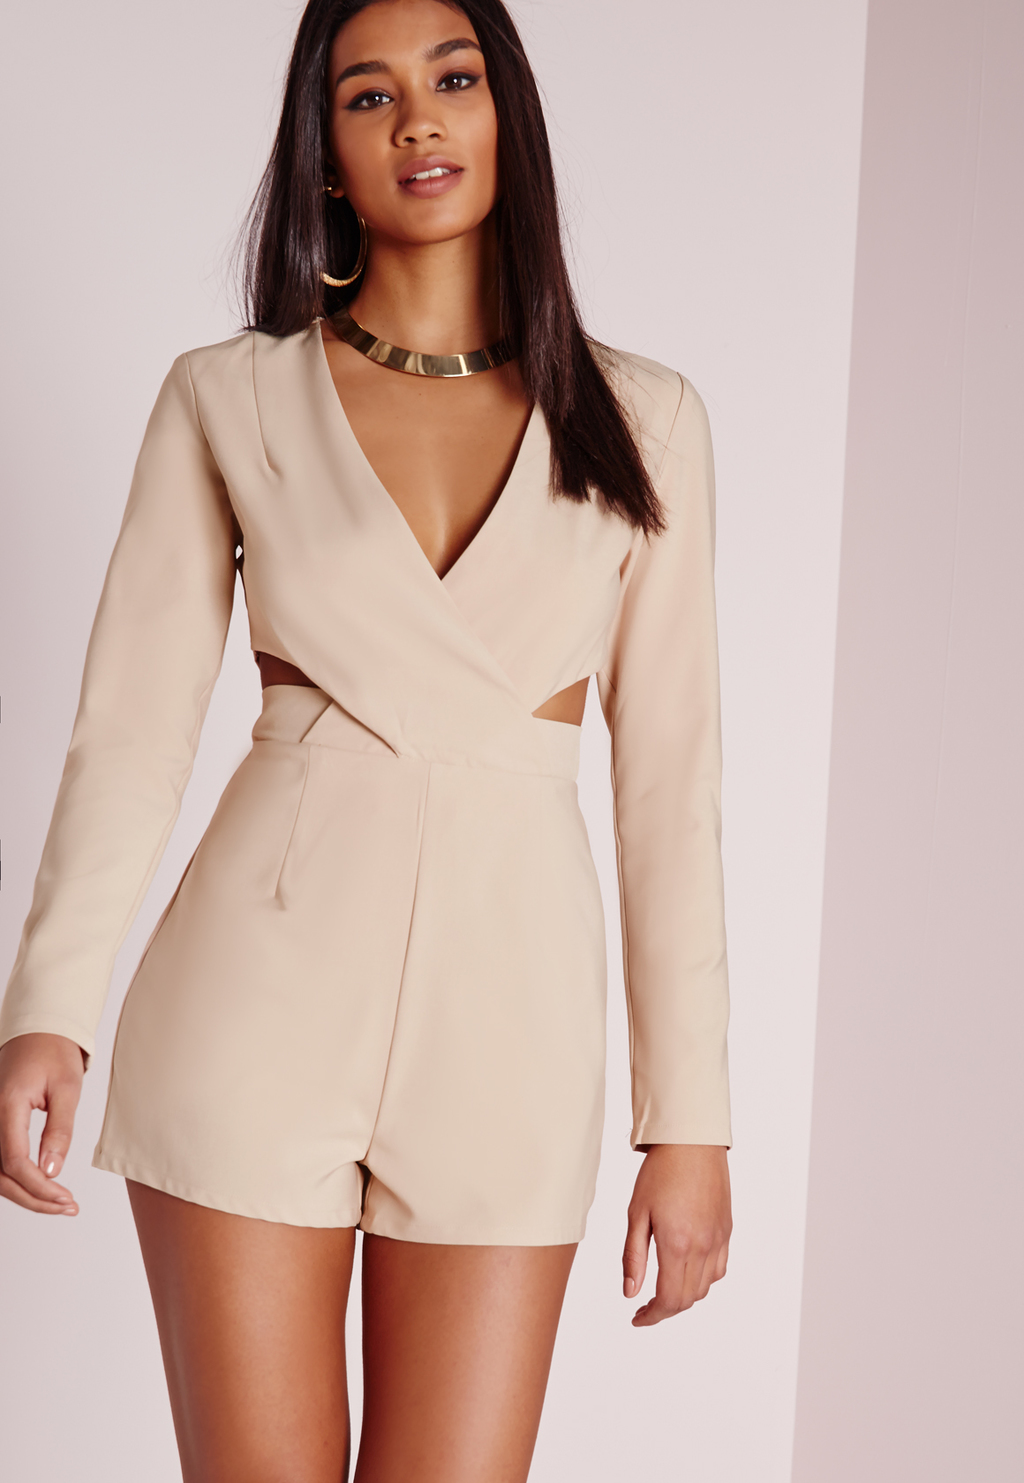 Cut Out Waist Wrap Playsuit Stone, Grey - neckline: low v-neck; pattern: plain; length: short shorts; predominant colour: nude; occasions: evening; fit: body skimming; fibres: polyester/polyamide - stretch; waist detail: cut out detail; sleeve length: long sleeve; sleeve style: standard; style: playsuit; pattern type: fabric; texture group: woven light midweight; season: s/s 2016; wardrobe: event